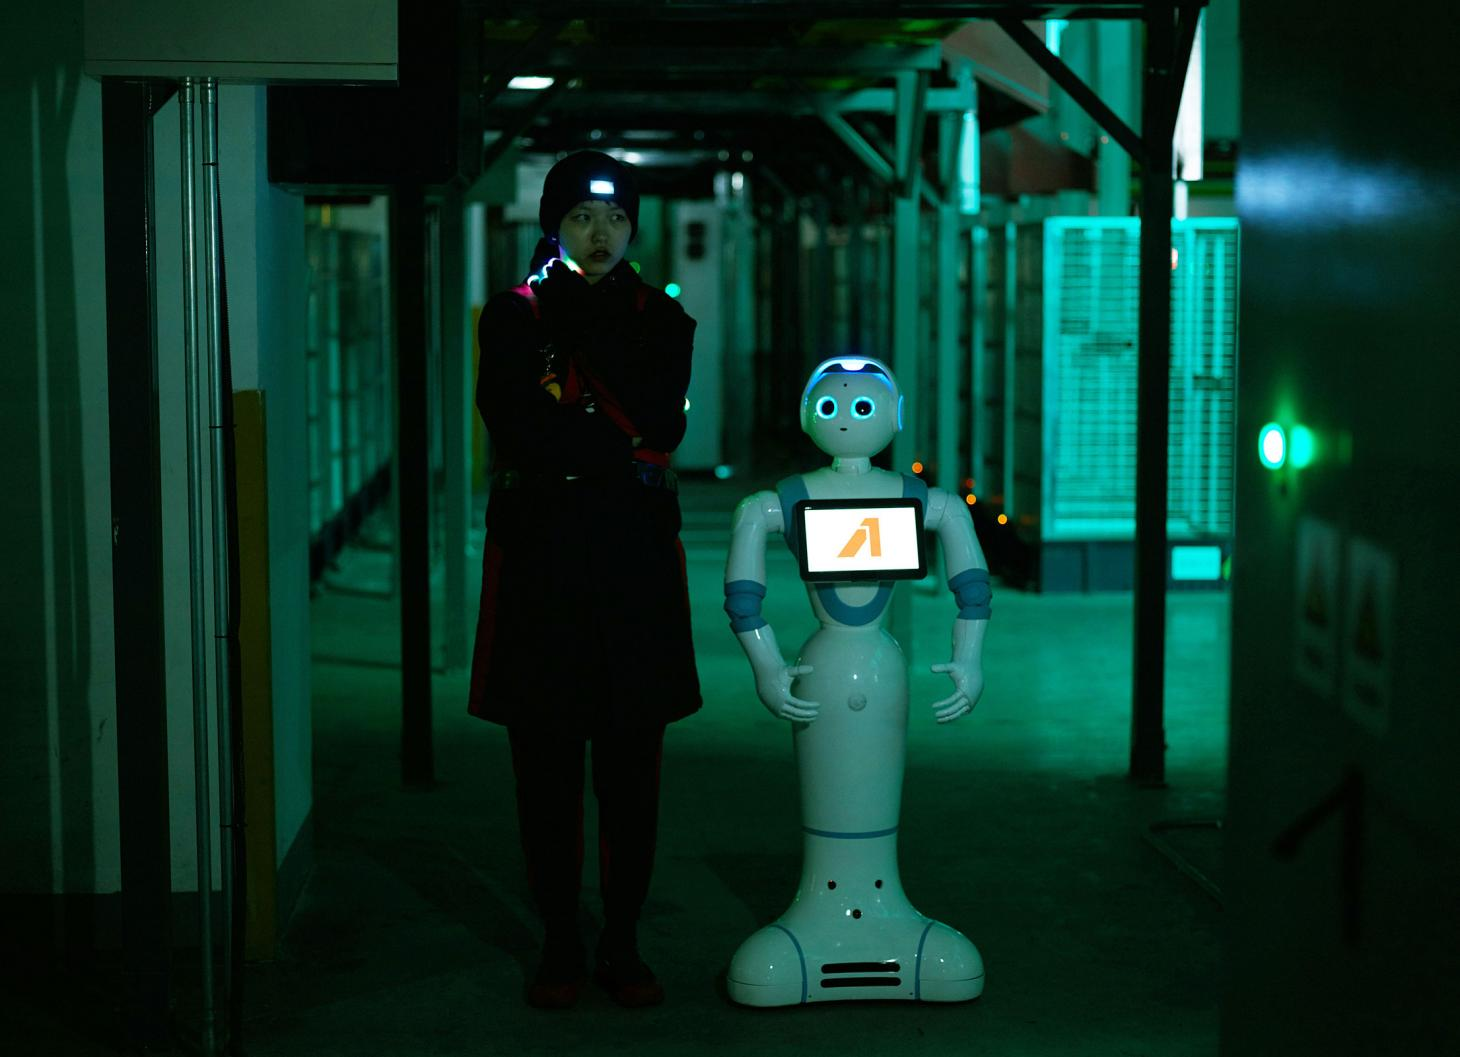 A young woman stood next to a robot in a dark alleyway